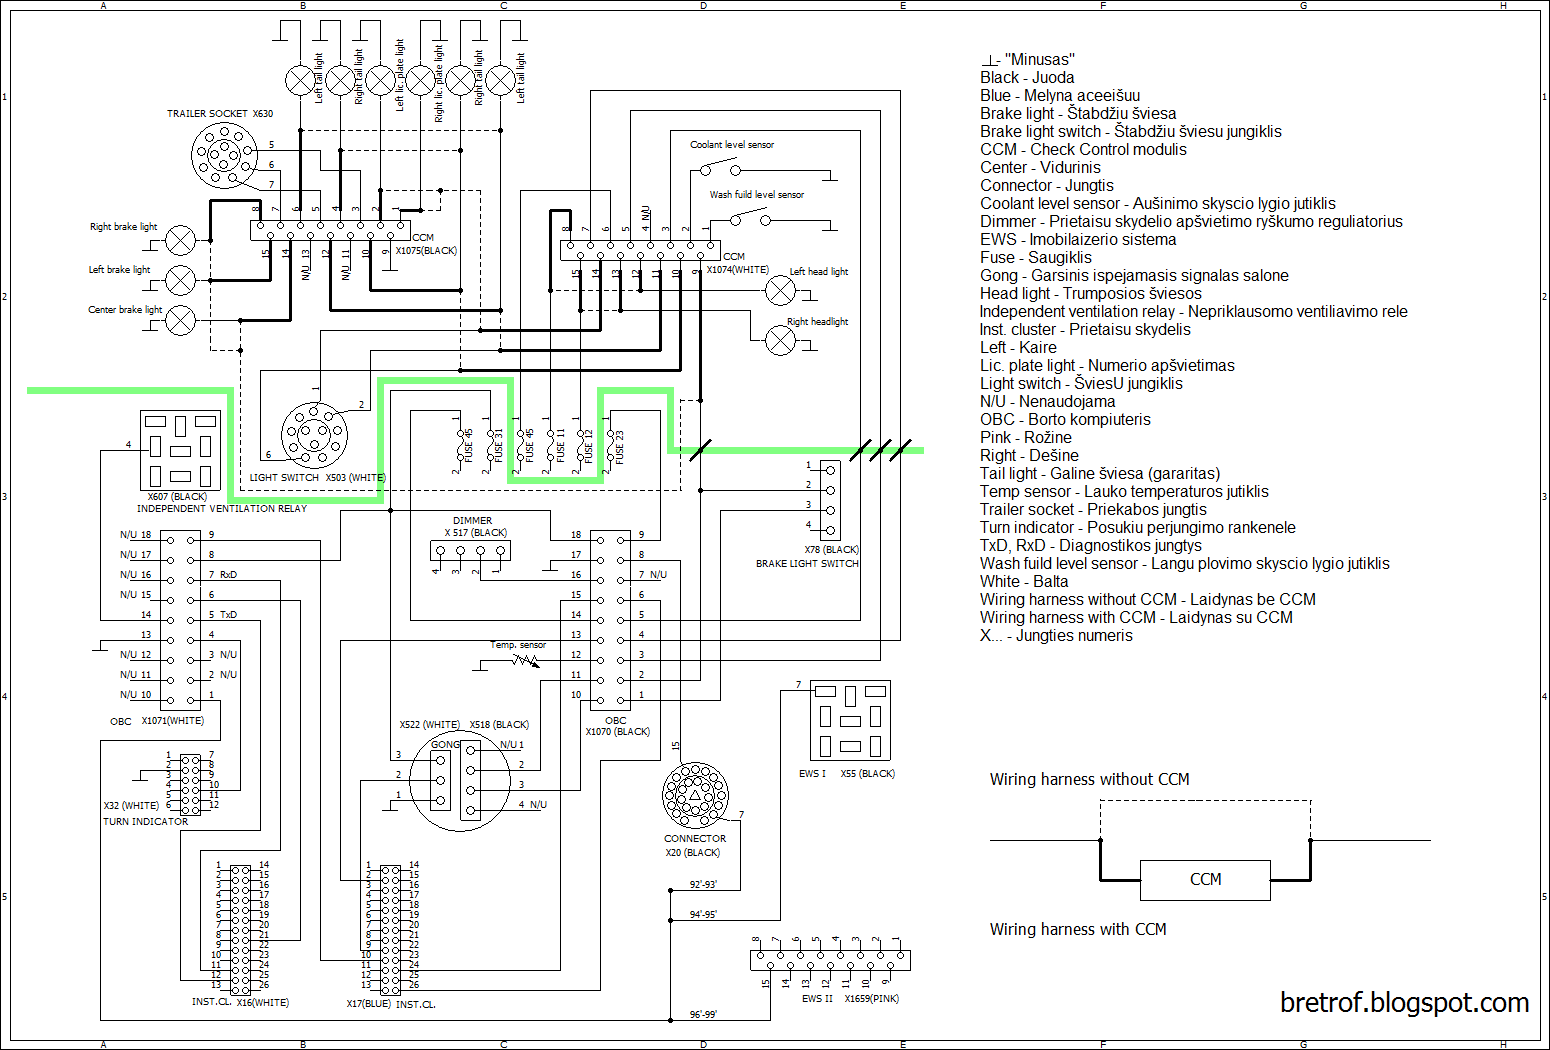 Bmw 528i Engine Diagram Air Intake Bmw 318ti Engine Diagram Wiring Diagram Odicis